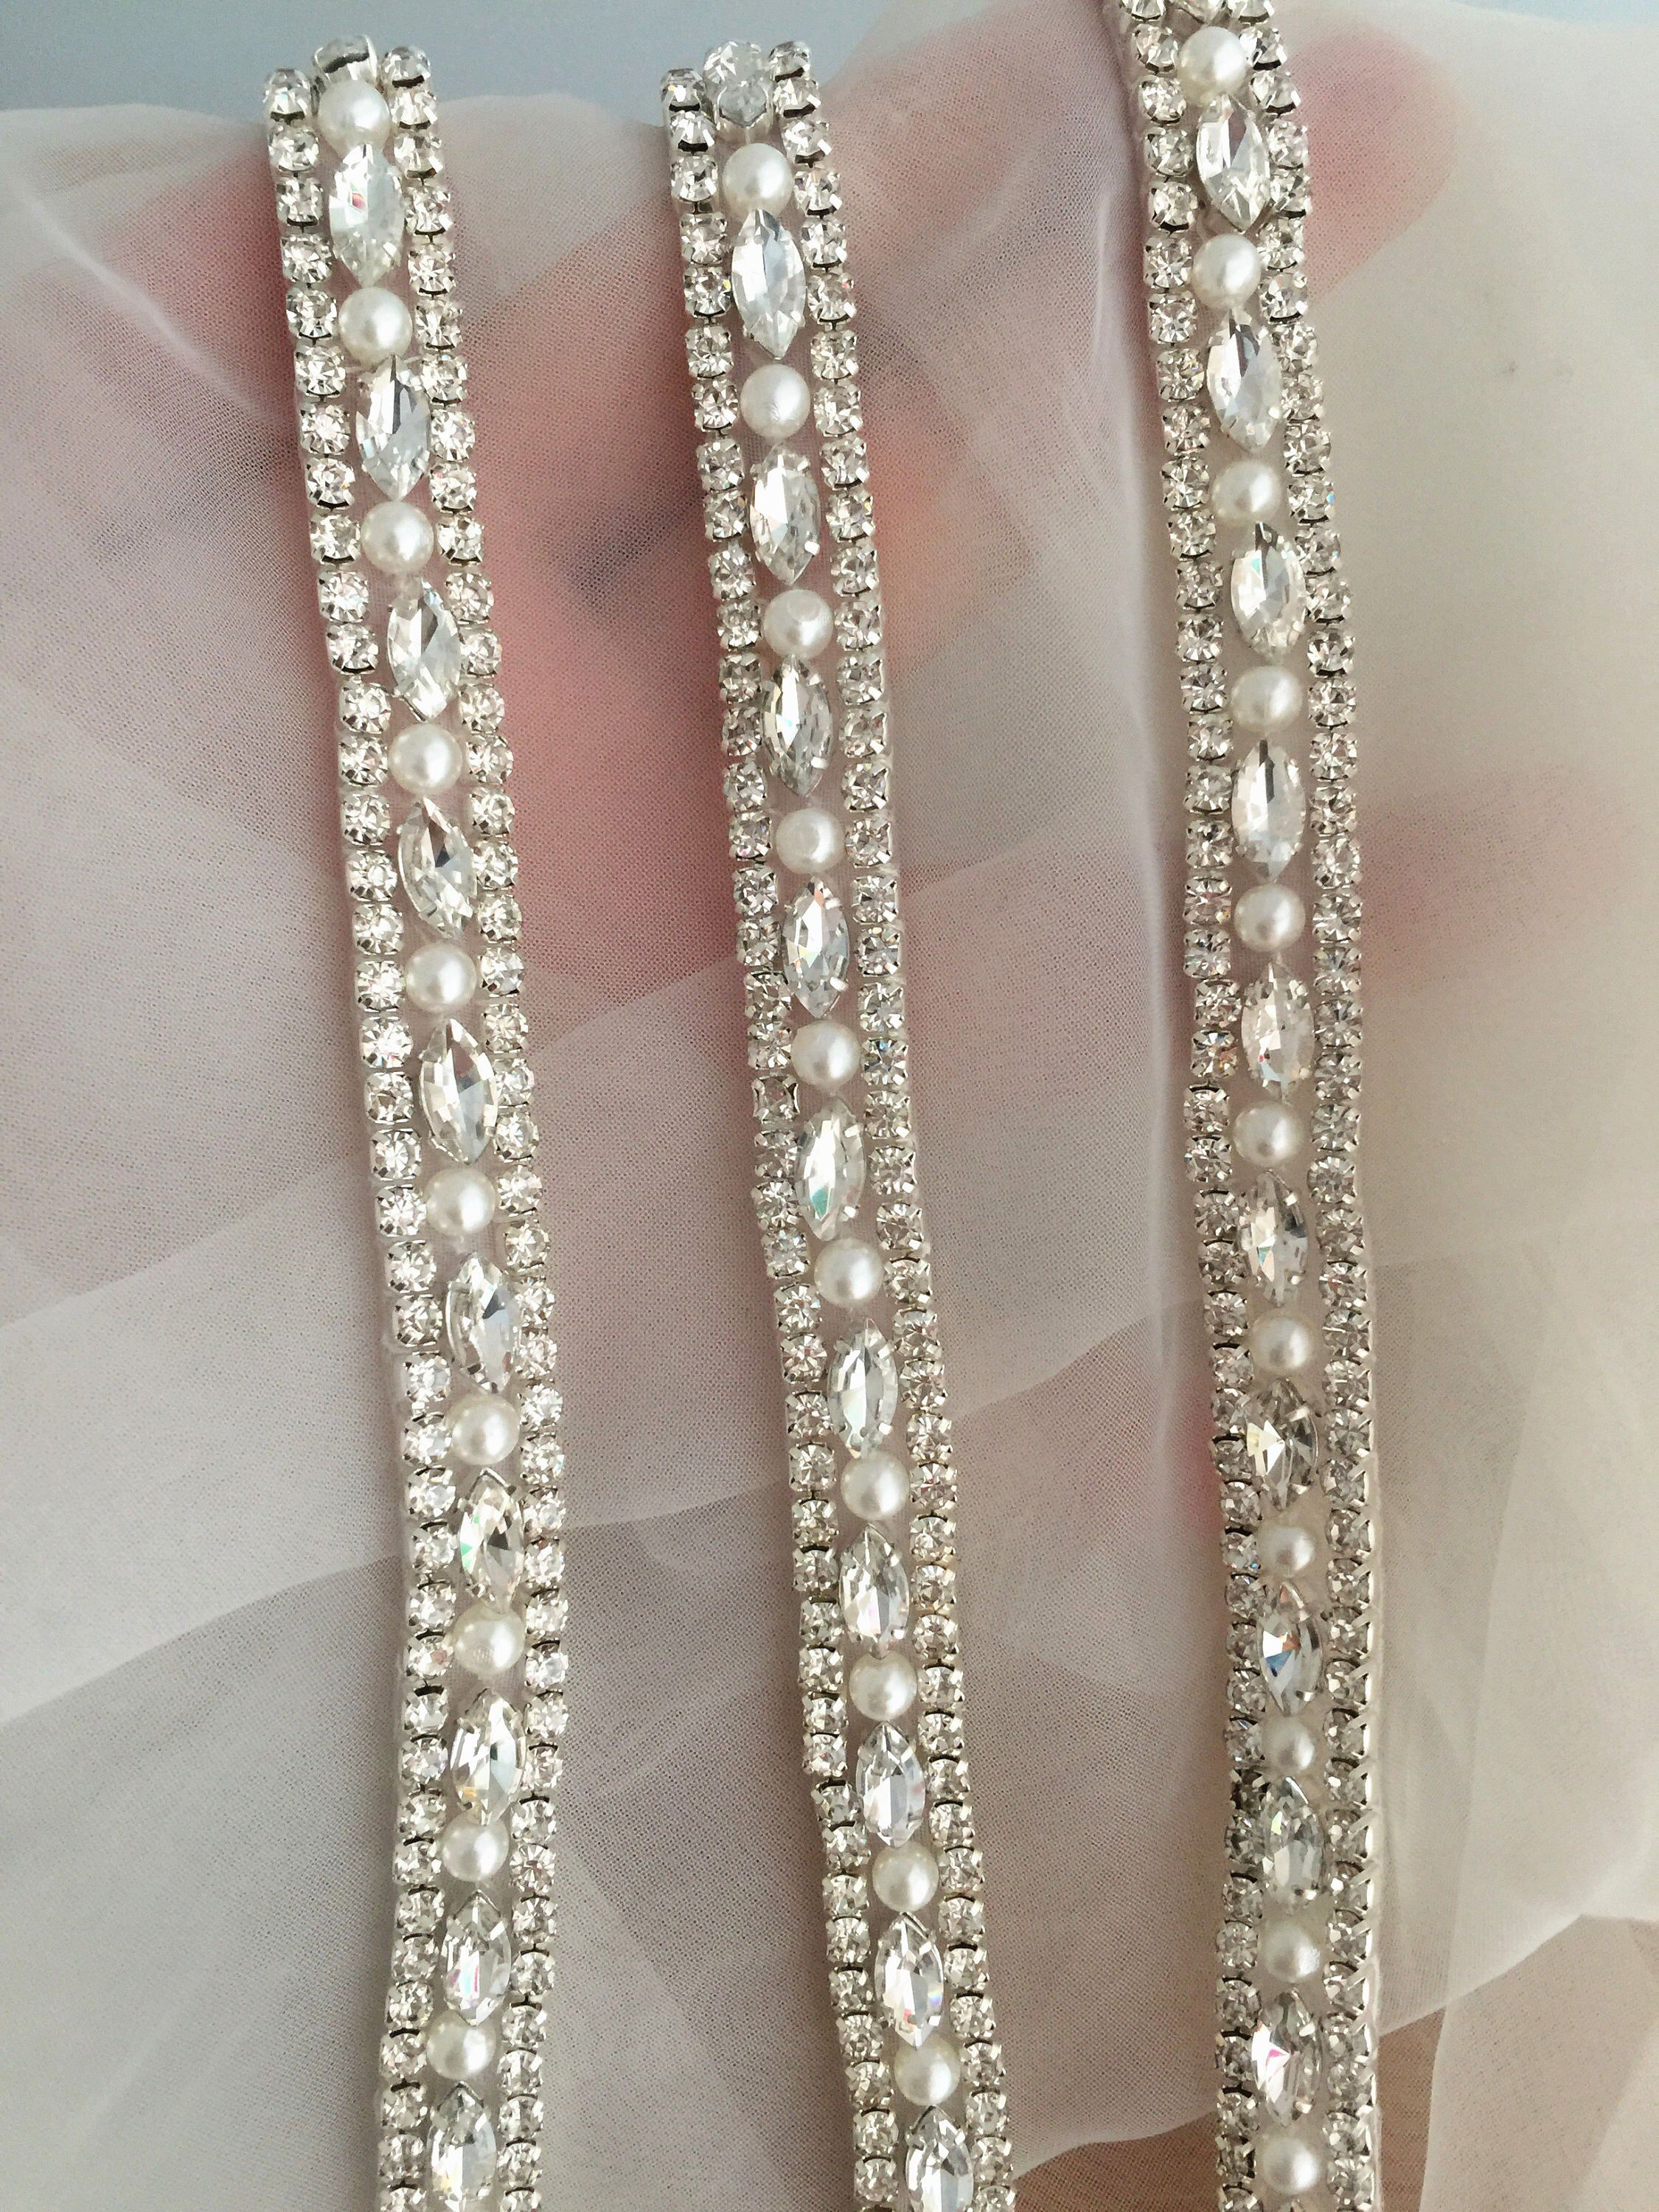 1 yard Thin rhinestone and crystal beaded lace trim for